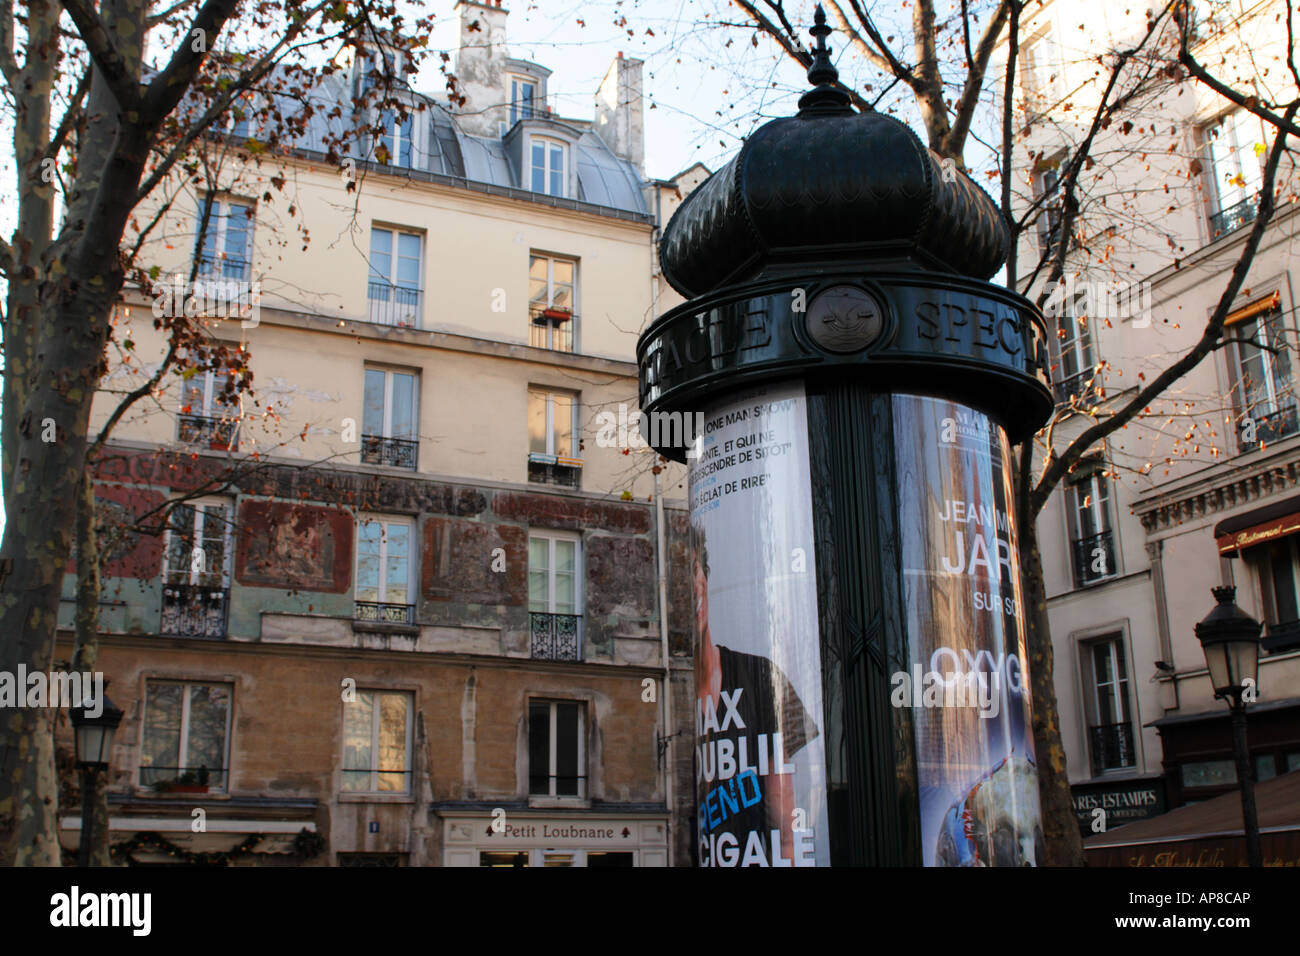 A traditional French advertising bollard on the Left Bank of the River Seine in the Ile de la Cite Paris France - Stock Image